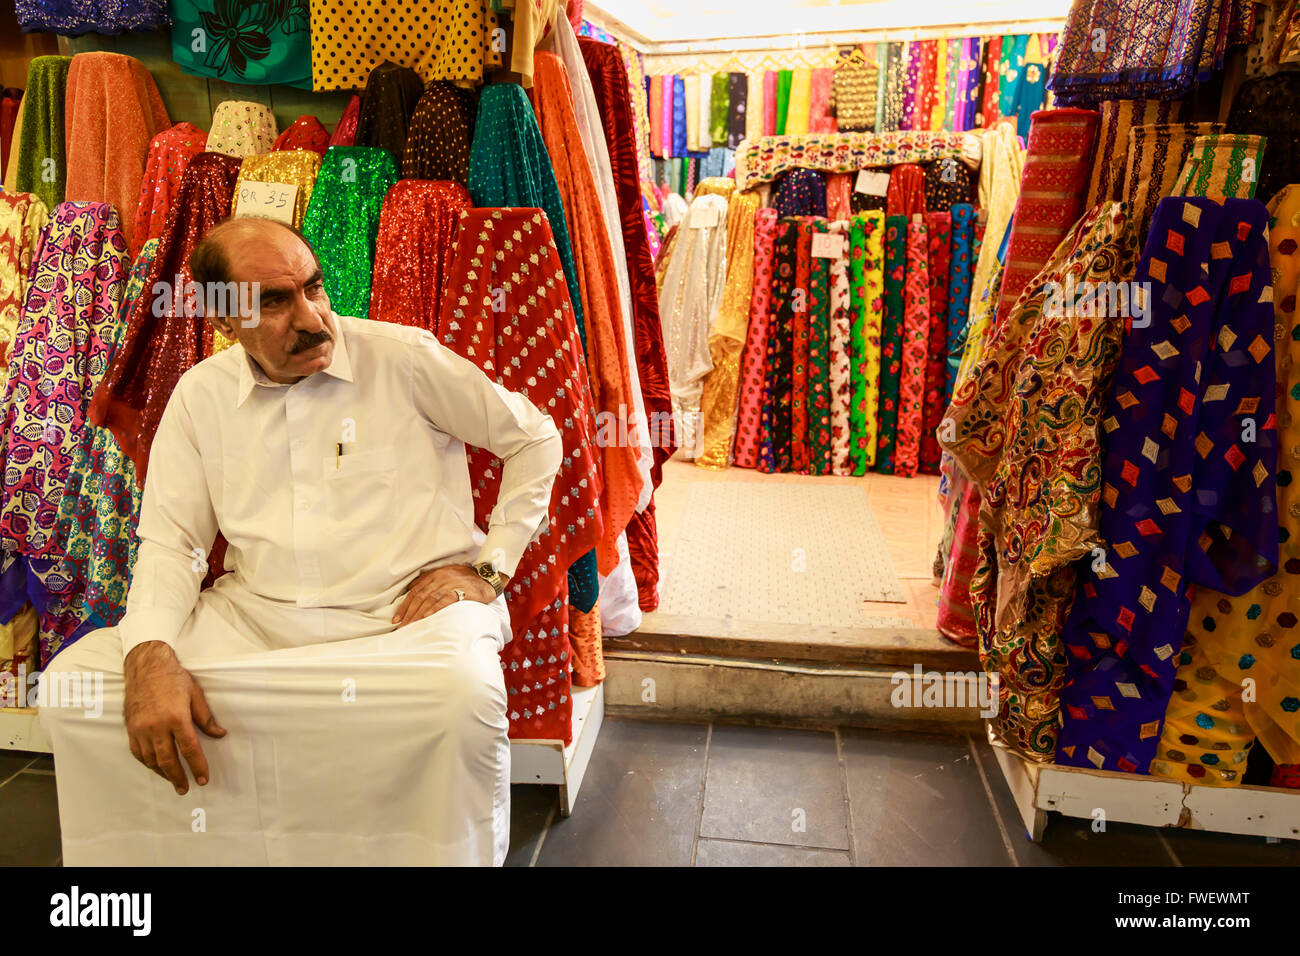 Shopkeeper seated outside his shop surrounded by  colourful material, Souq Waqif, Doha, Qatar, Middle East - Stock Image